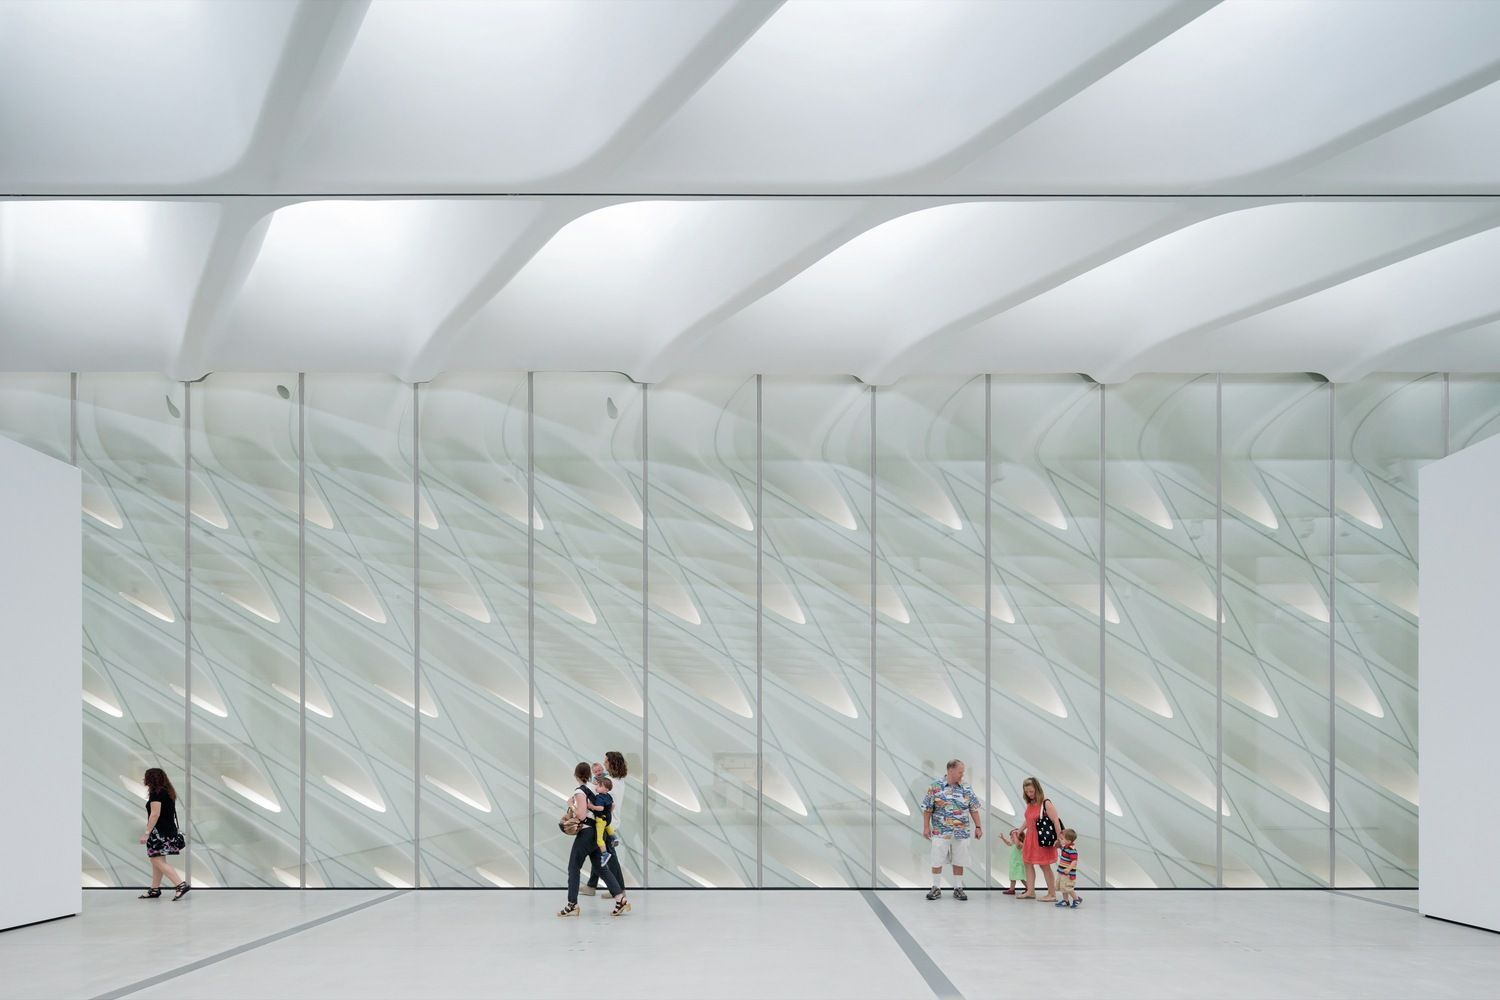 Gallery - The Broad / Diller Scofidio + Renfro - 4